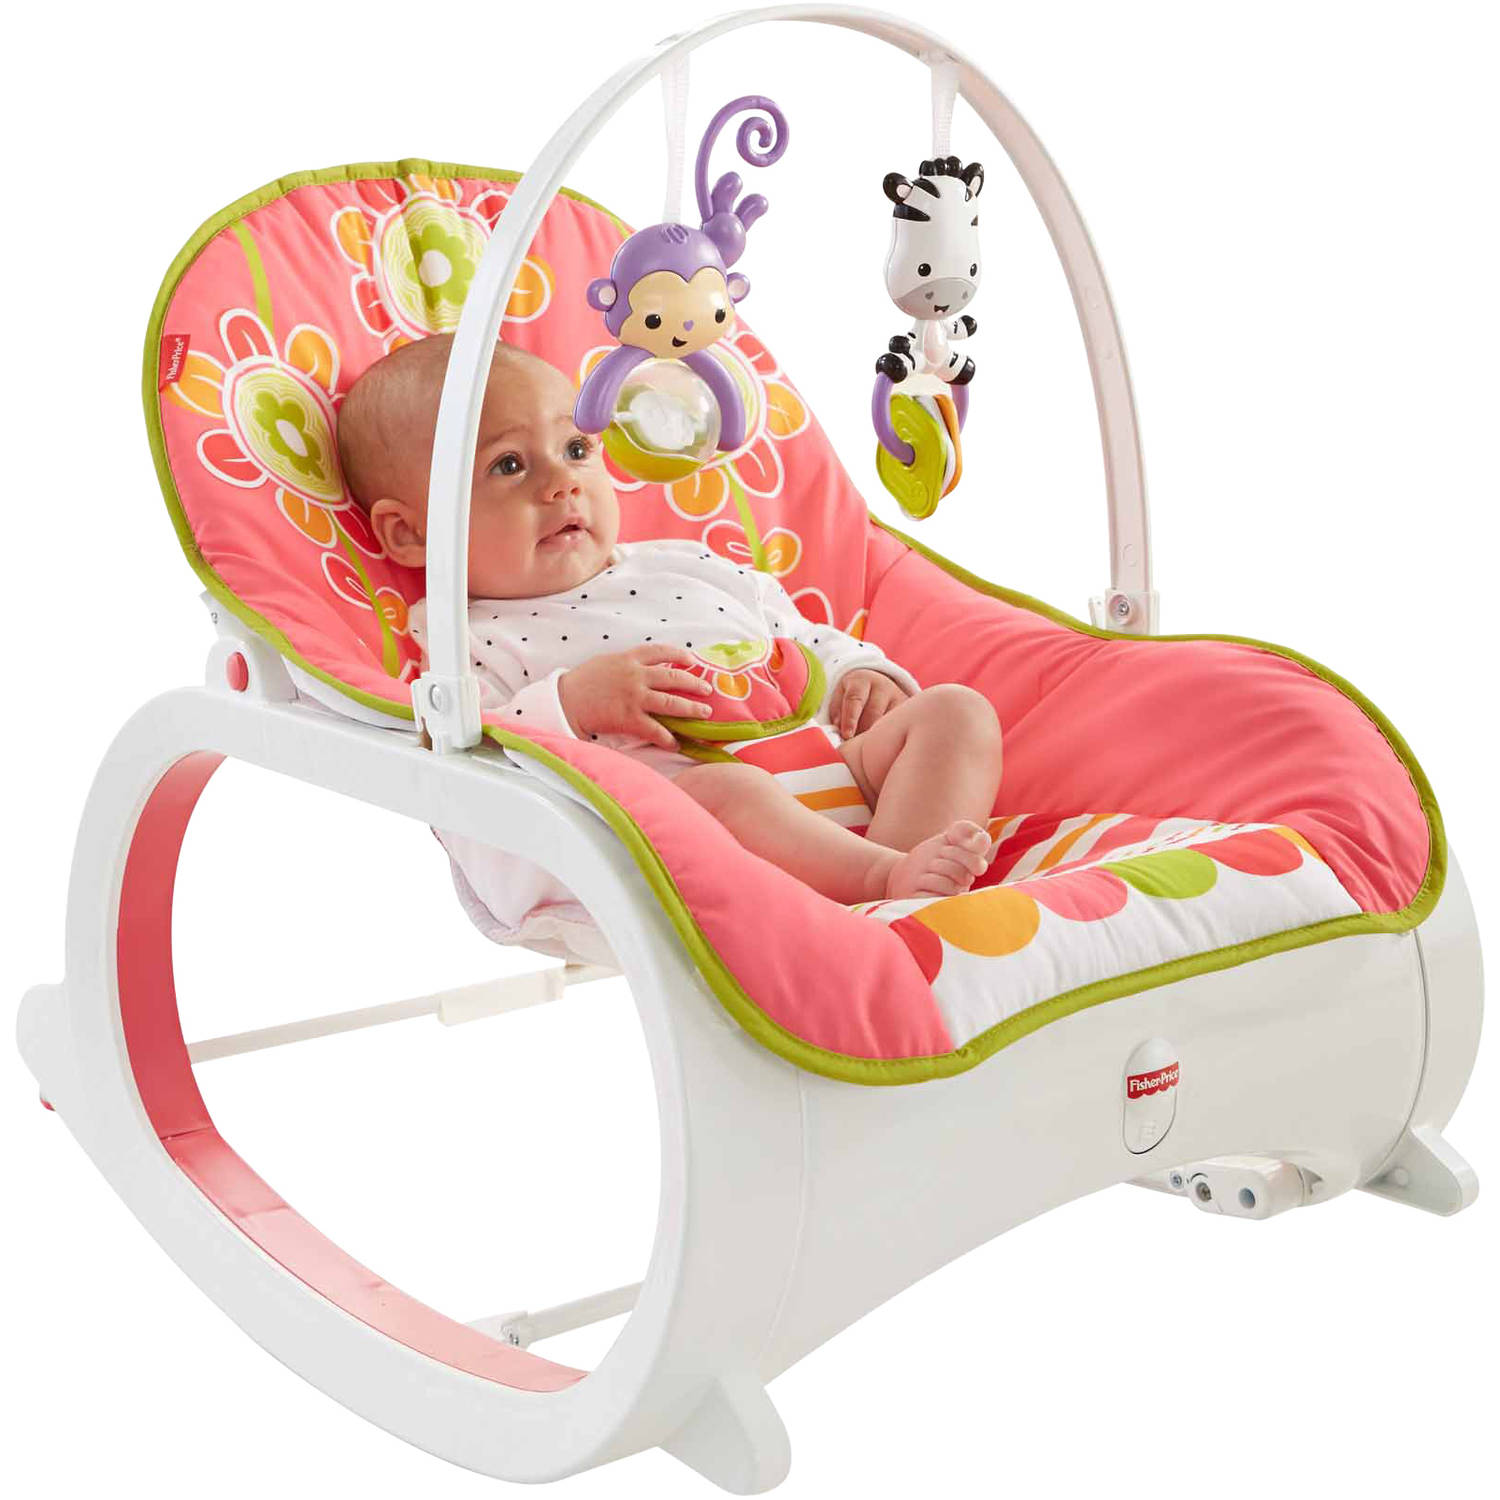 Baby rocking chair fisher price - Baby Rocking Chair Fisher Price 19